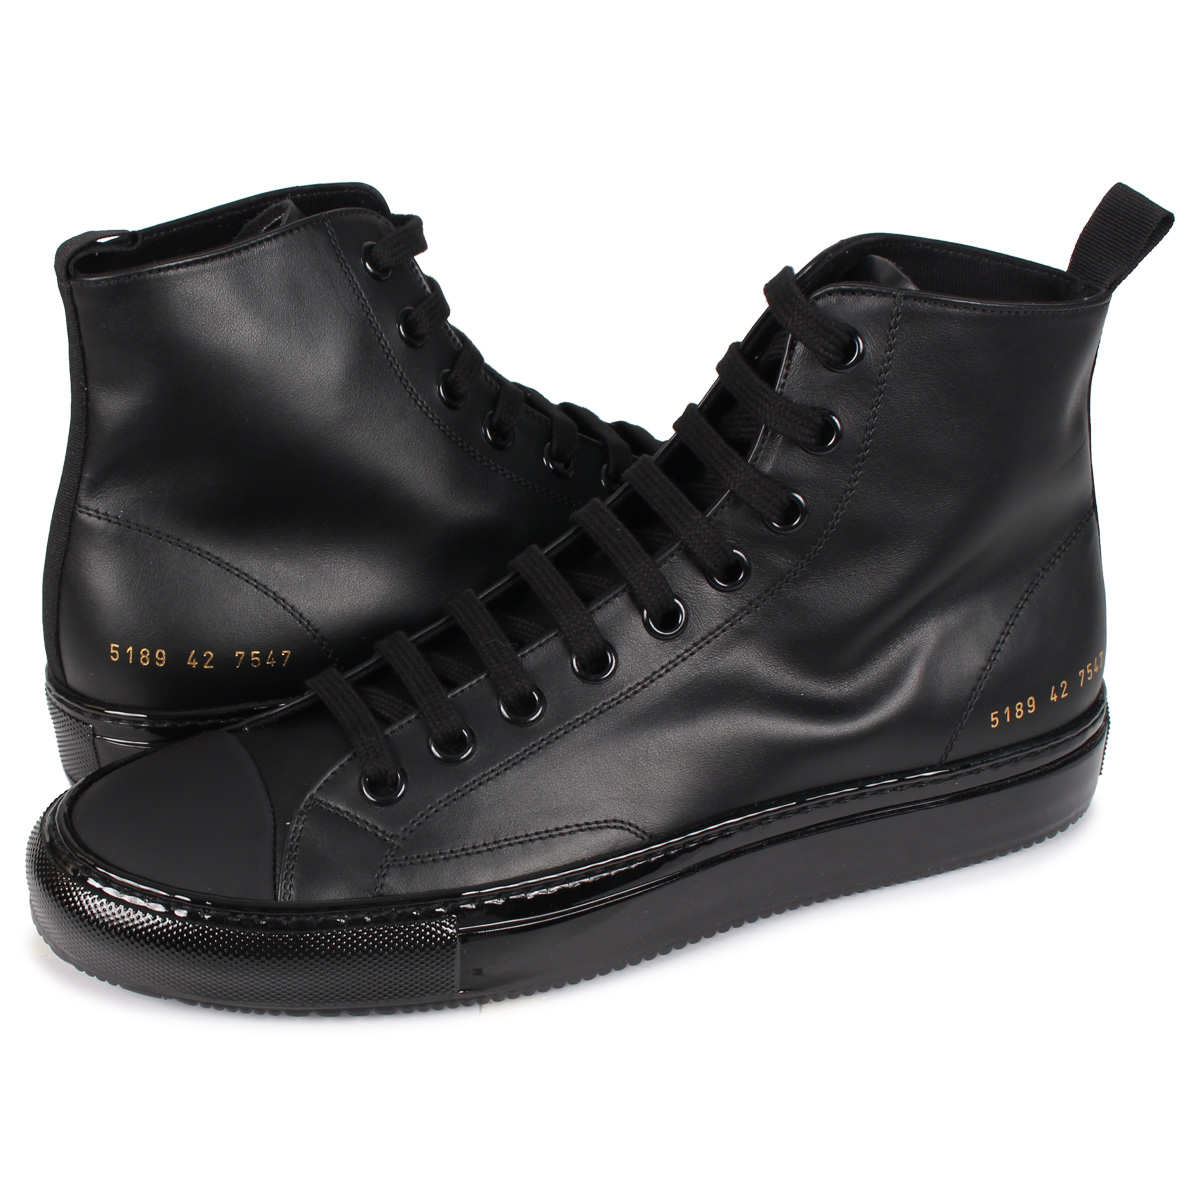 Common Projects TOURNAMENT HIGH IN LEATHER コモンプロジェクト トーナメント ハイ スニーカー メンズ ブラック 黒 5189-7547 [4/2新入荷]